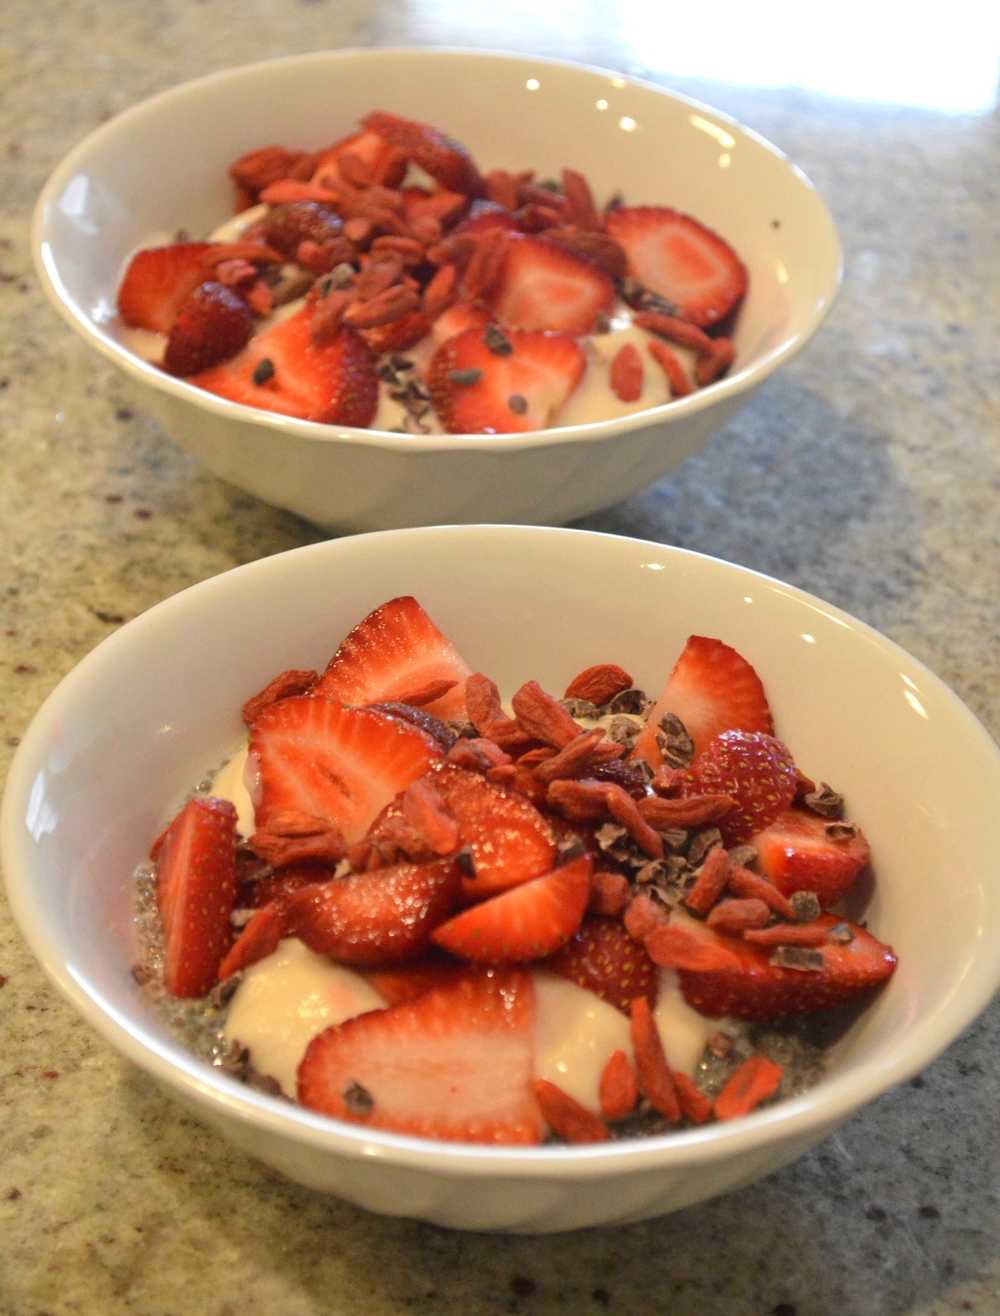 LaurenSchwaiger-Healthy-Life-Style-Blog-Chia-Pudding.jpg